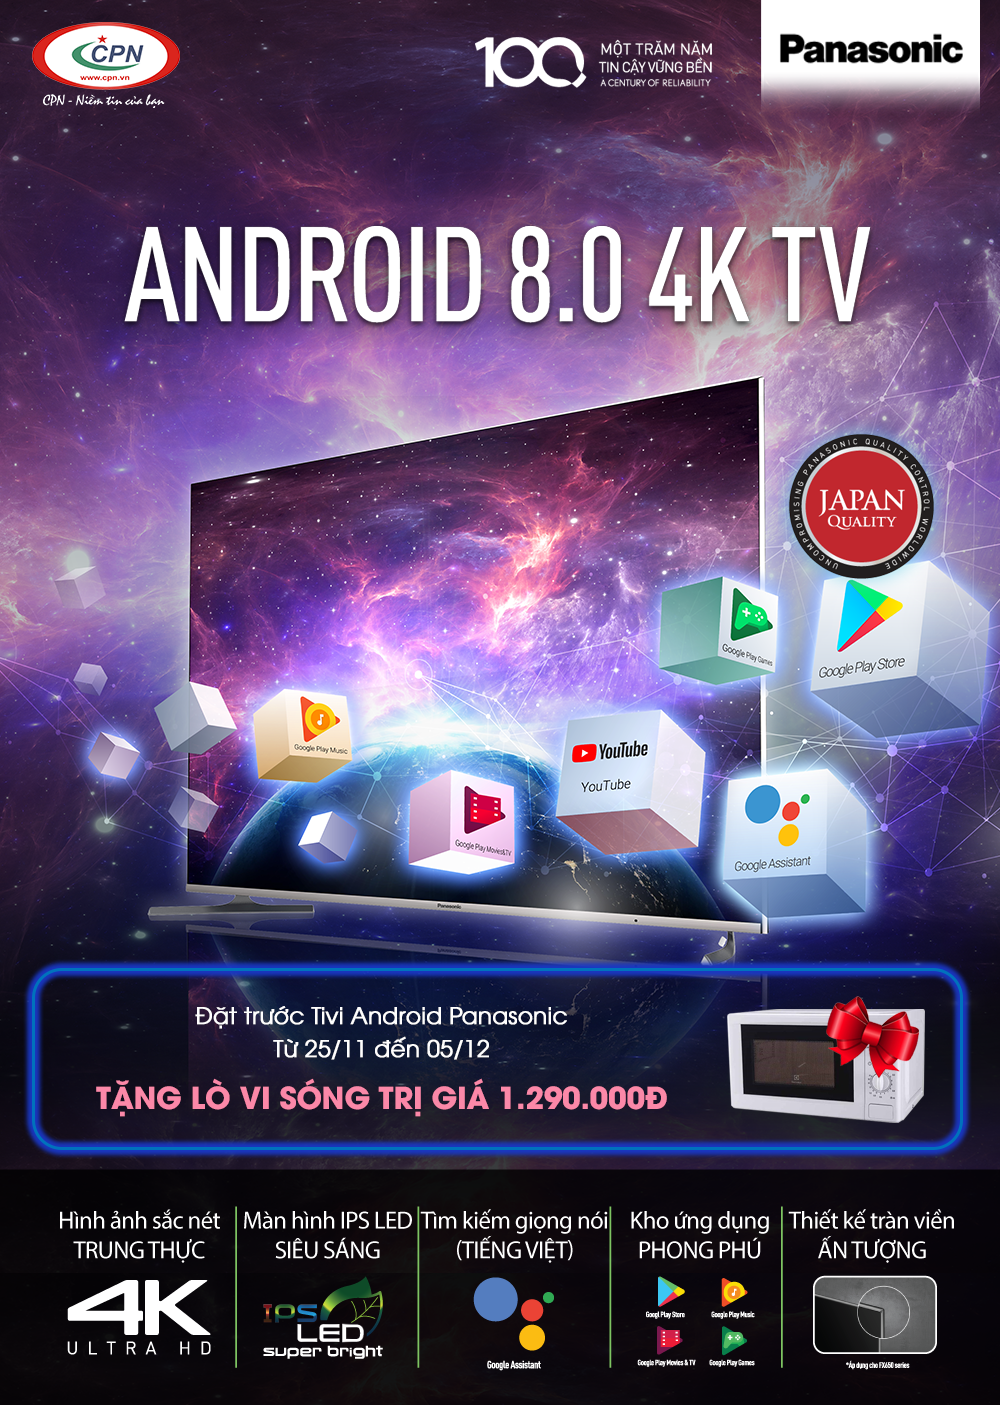 dattruoc-tivi-android-panasonic-01.png